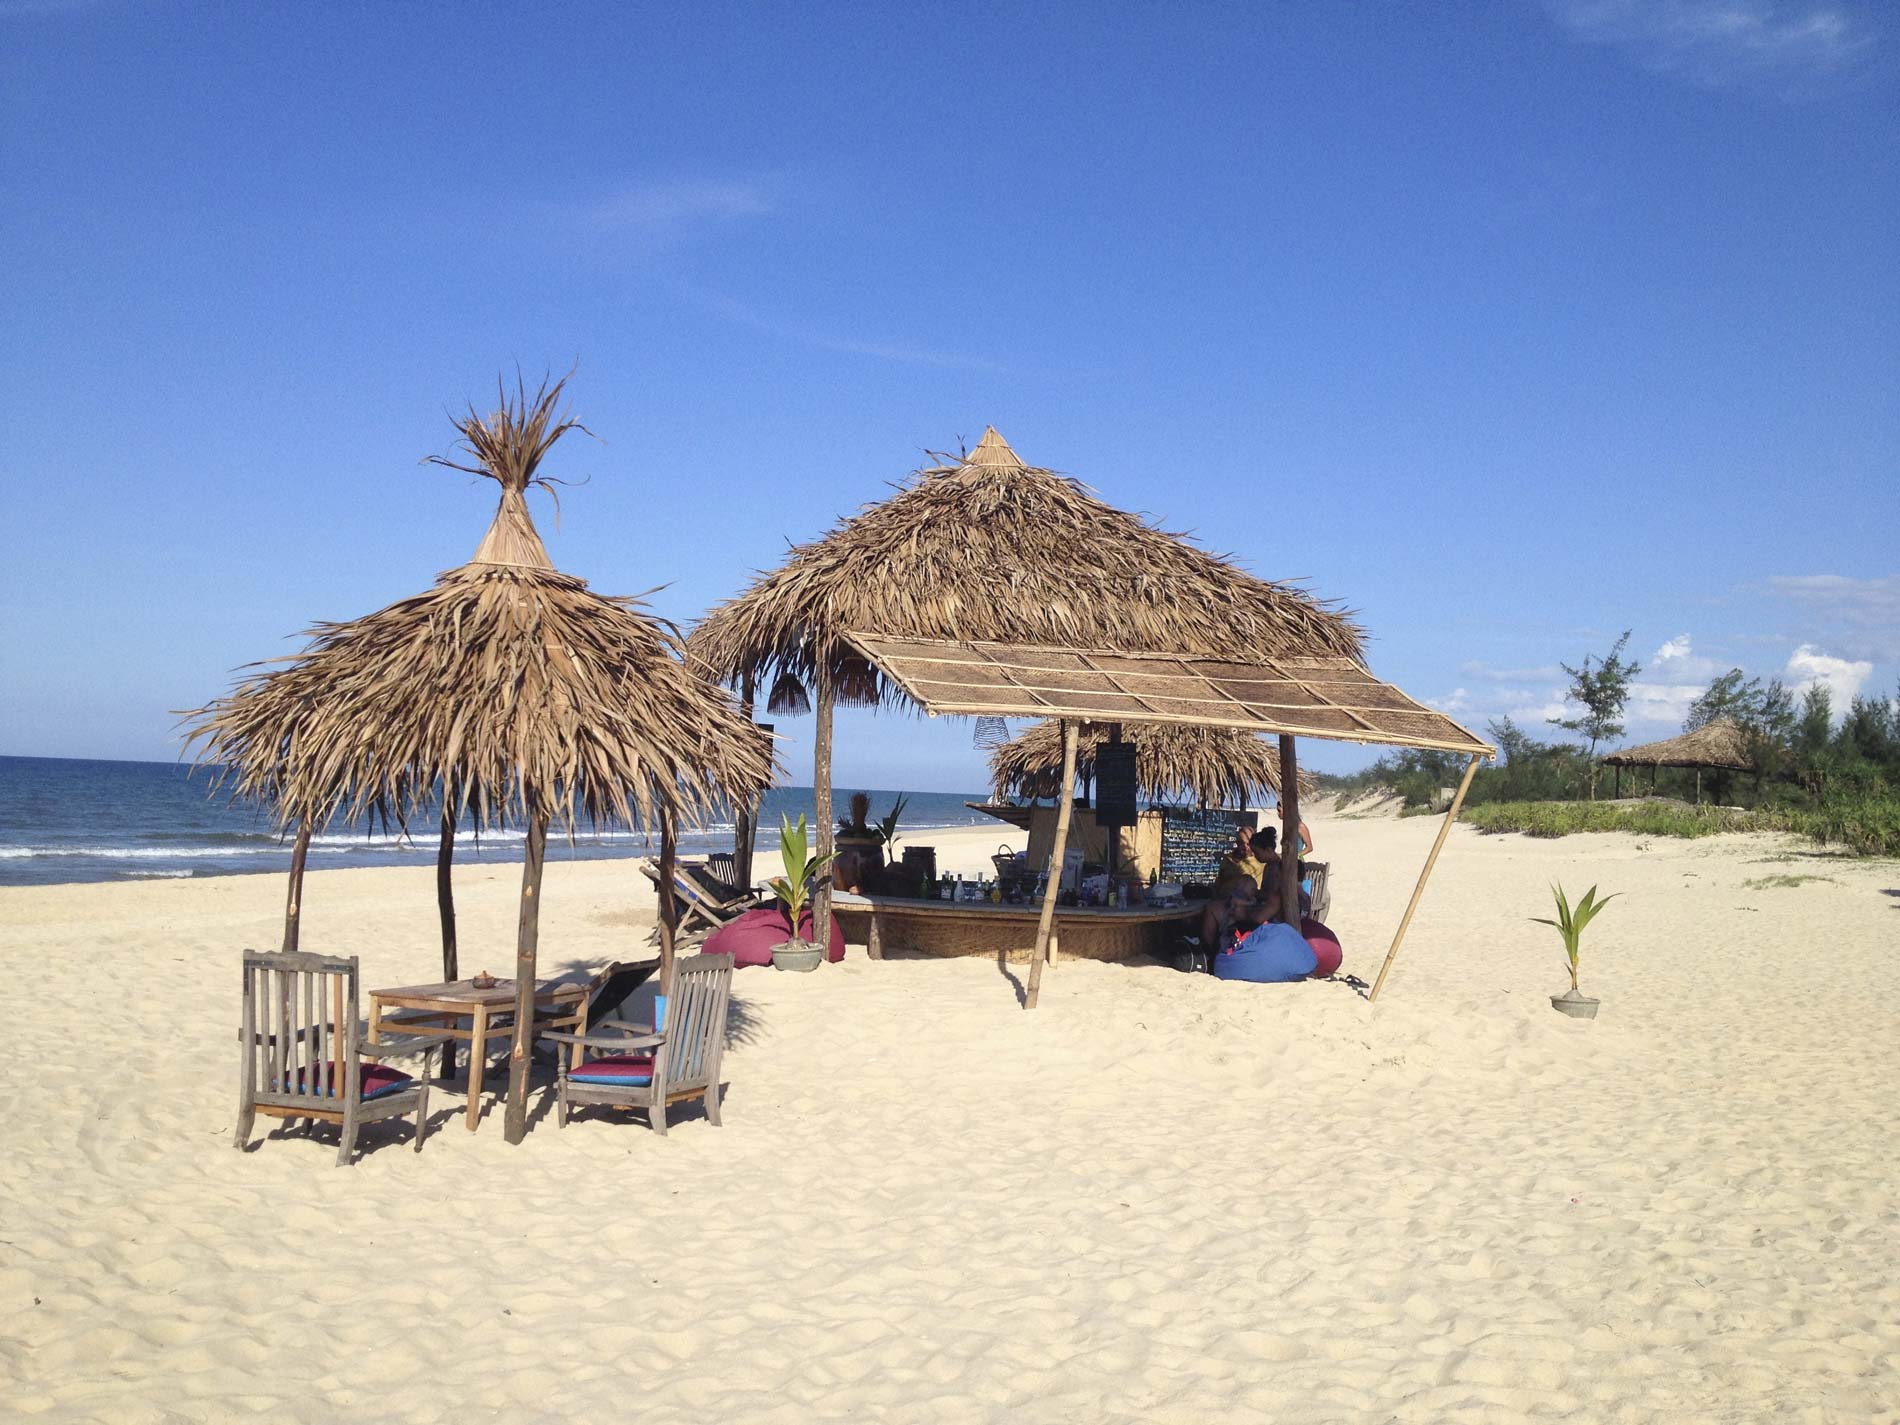 Hd Tropical Island Beach Paradise Wallpapers And Backgrounds: The Beach Bar At Phu Thuan Beach, Hue